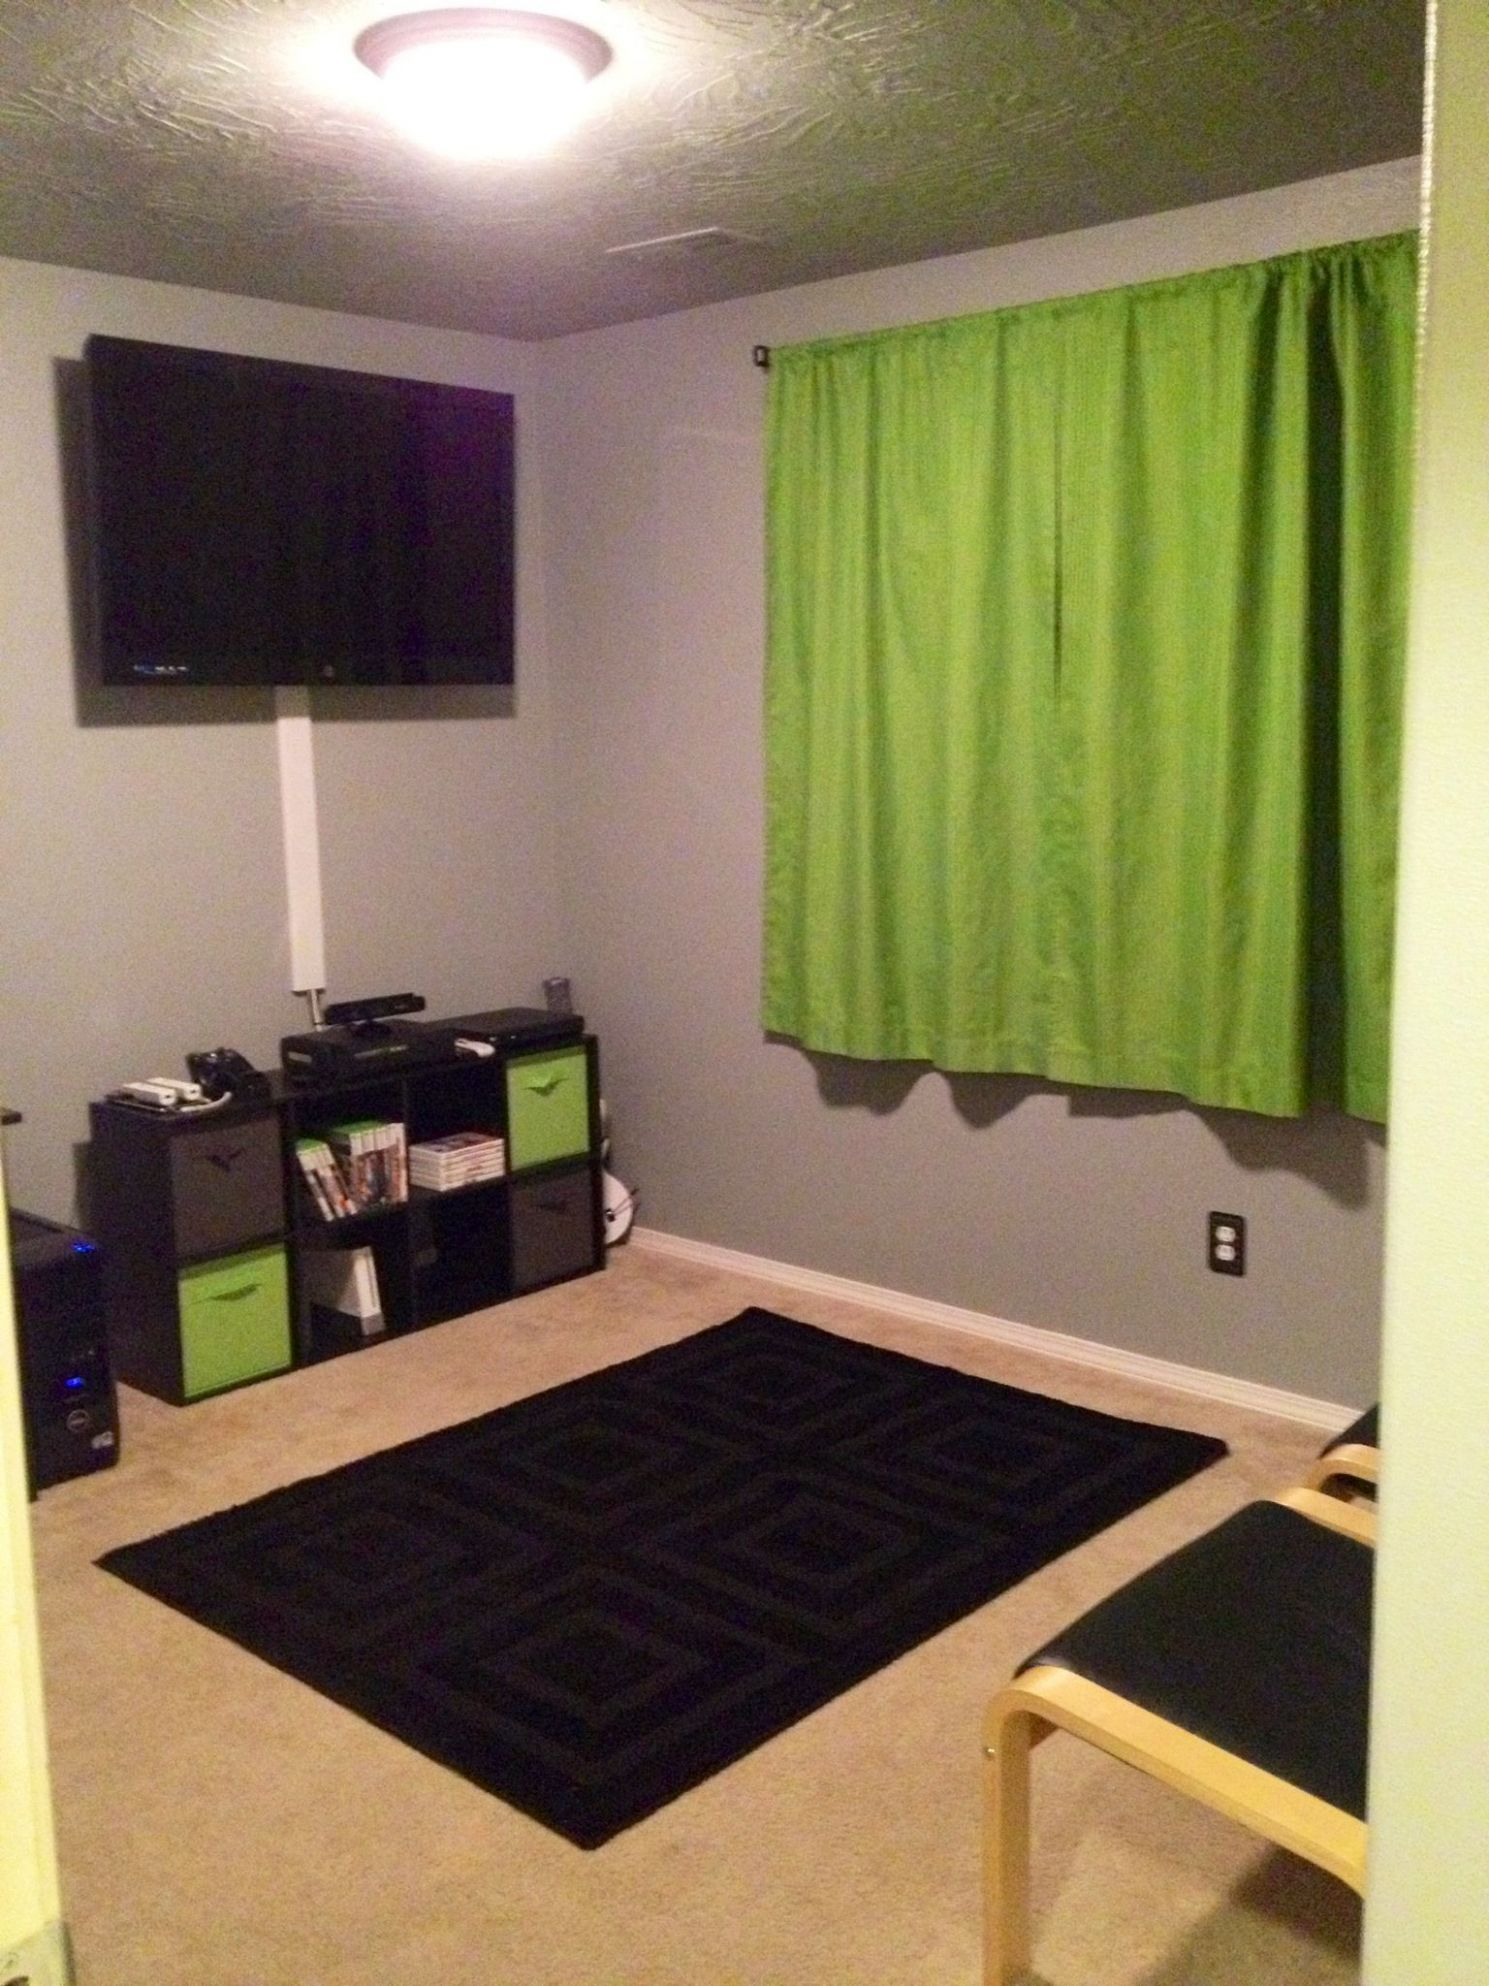 Pin on Used Xbox Games - xbox bedroom ideas